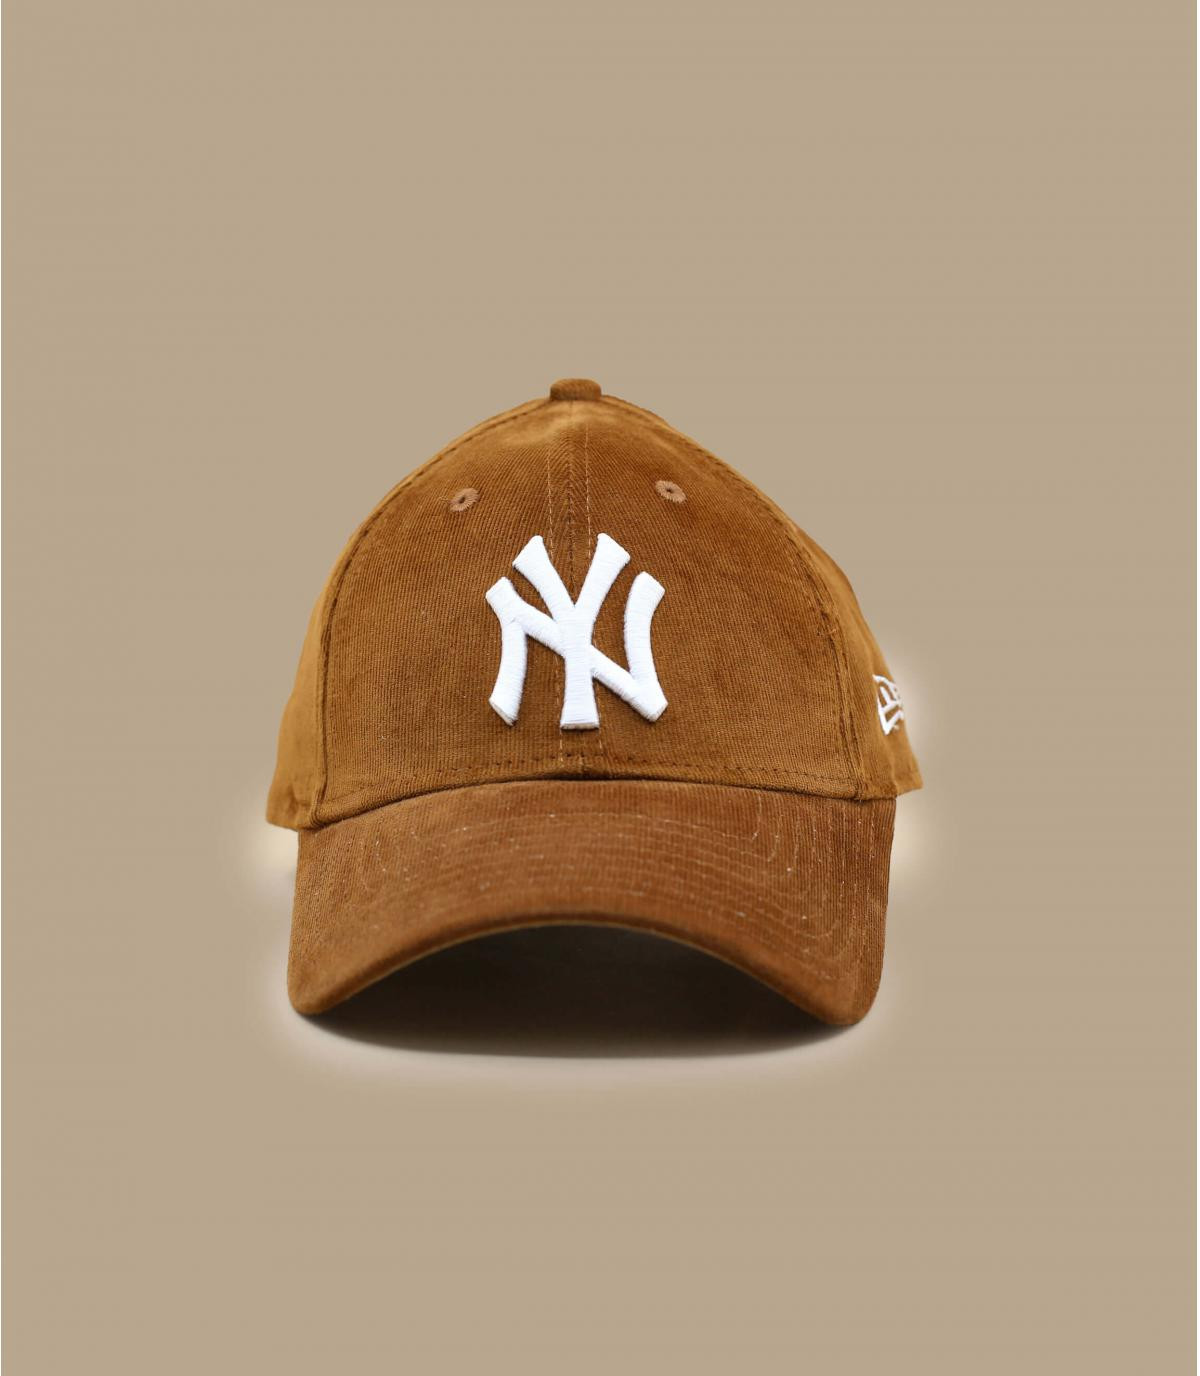 Détails Casquette Wmn Cord NY 940 toffee - image 2